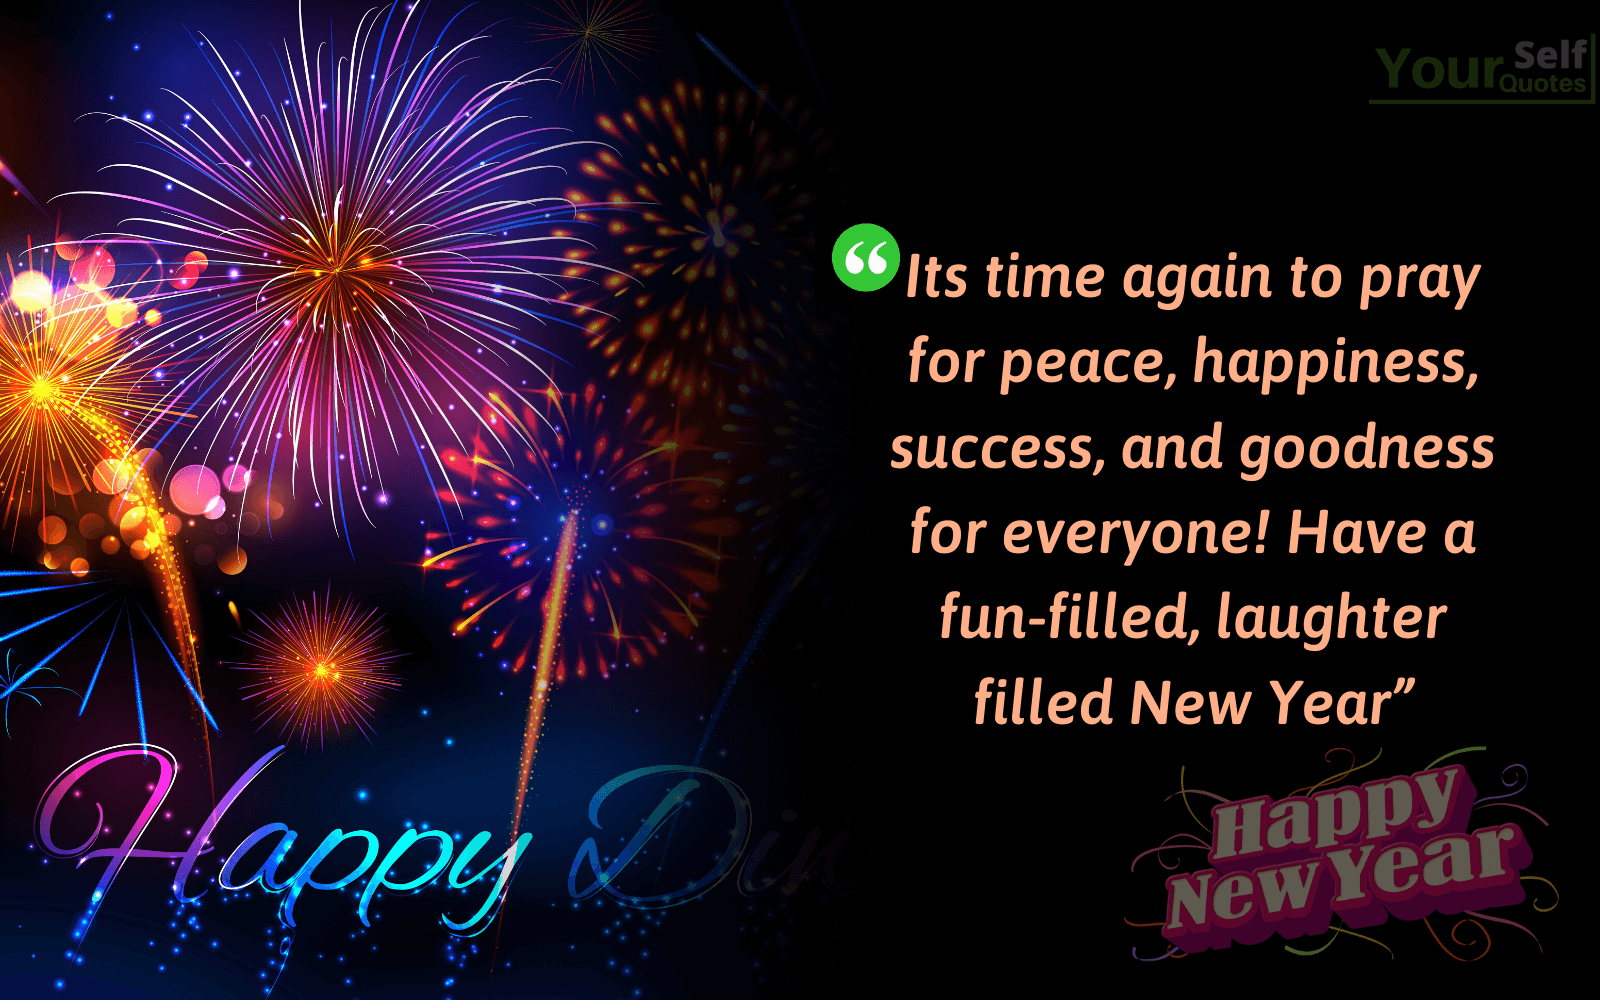 Happy New Year Greeting Cards Wallpaper